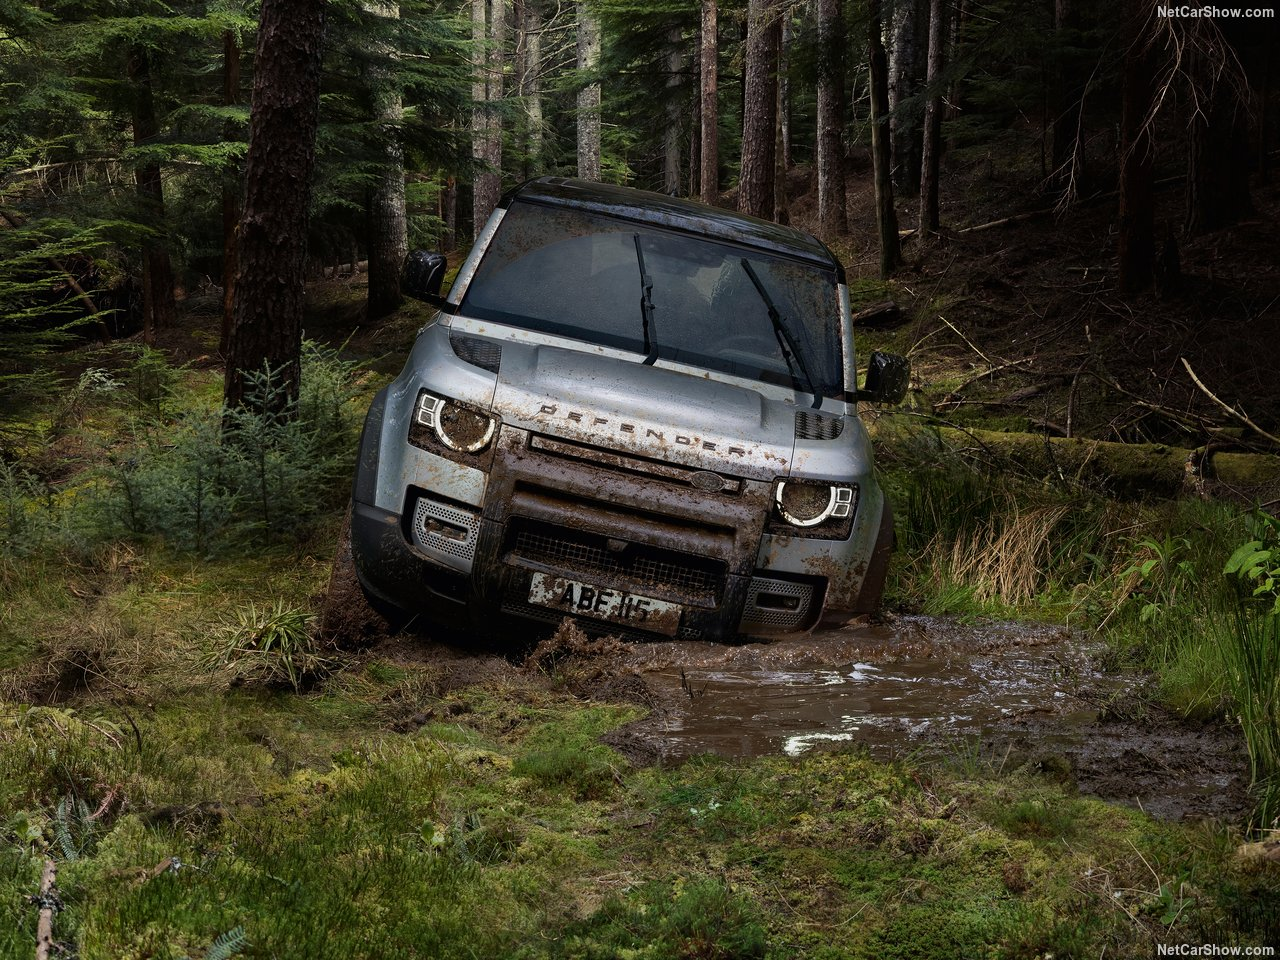 Land_Rover-Defender_110-2020-1280-5c.jpg